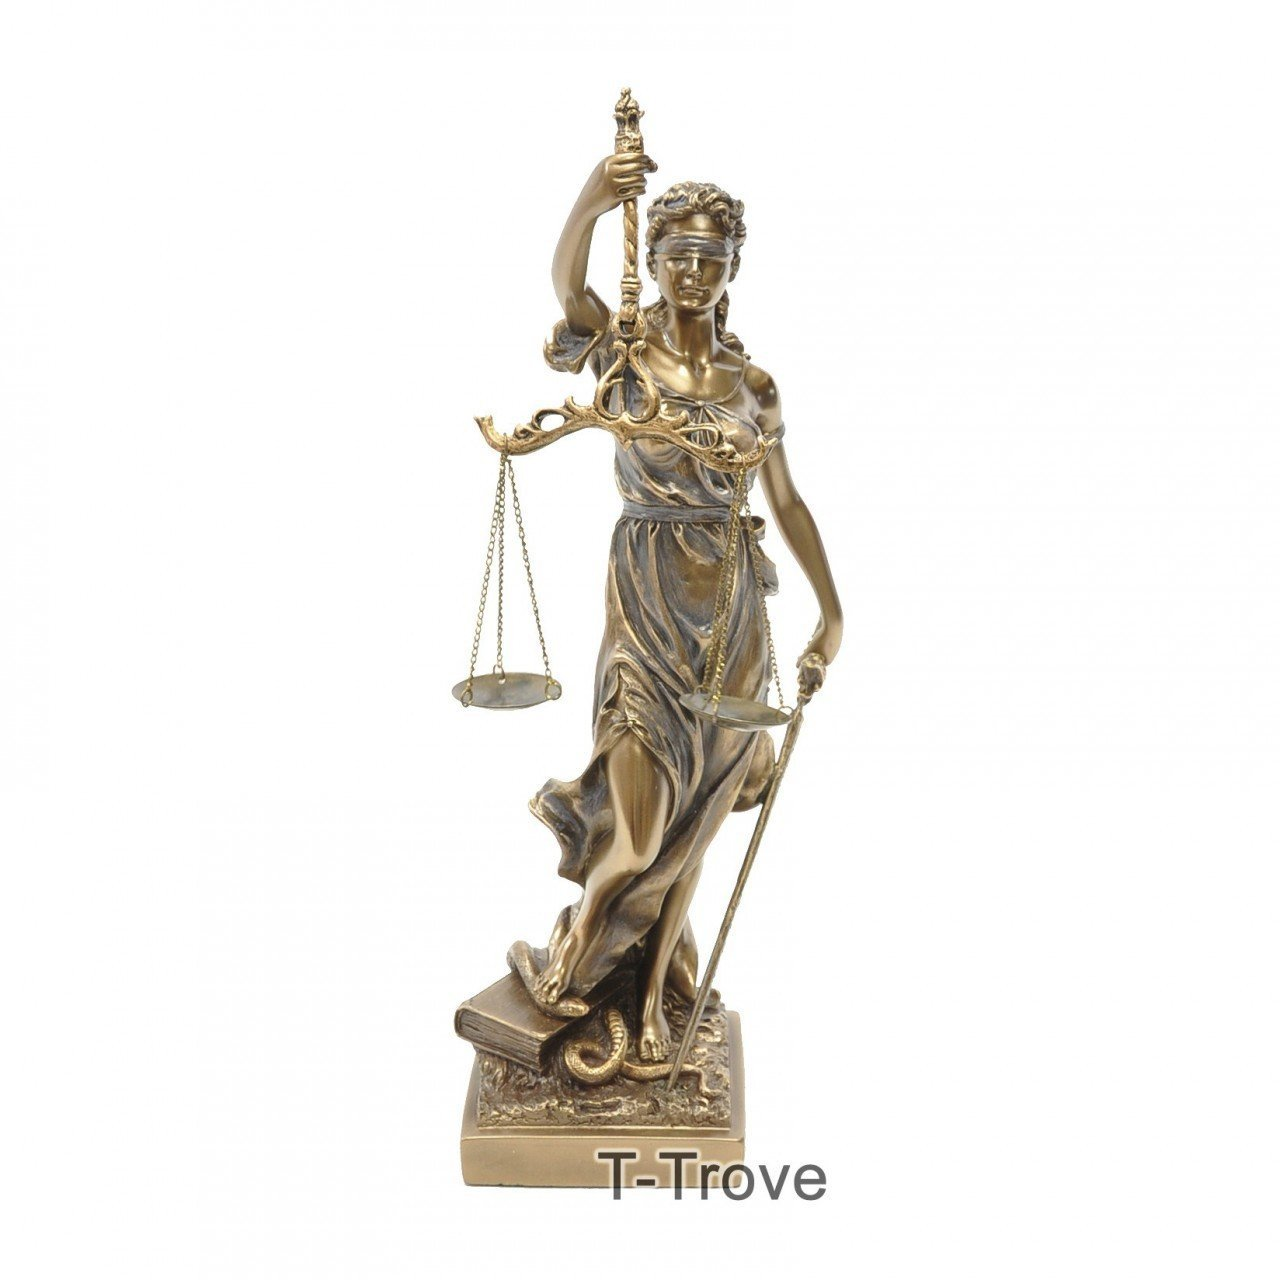 Cheap bronze lady justice find bronze lady justice deals on line get quotations cold cast bronze lady justice la justitia statue figurine buycottarizona